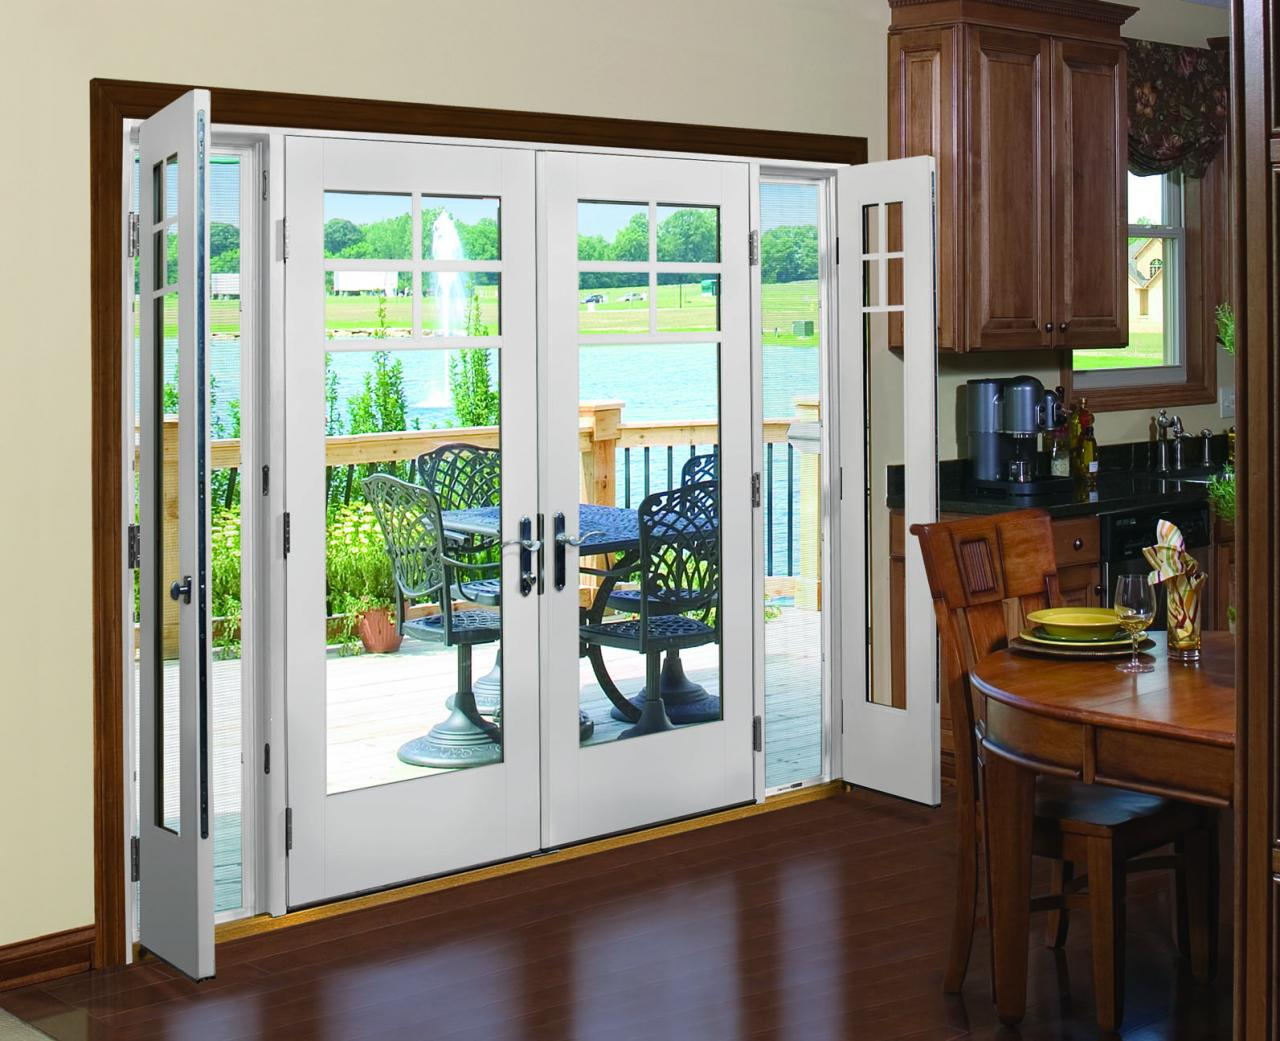 ... door or Therma-Tru Vented Sidelites Let in Fresh Air with Style & Therma-tru Vented Sidelites | The Money Pit